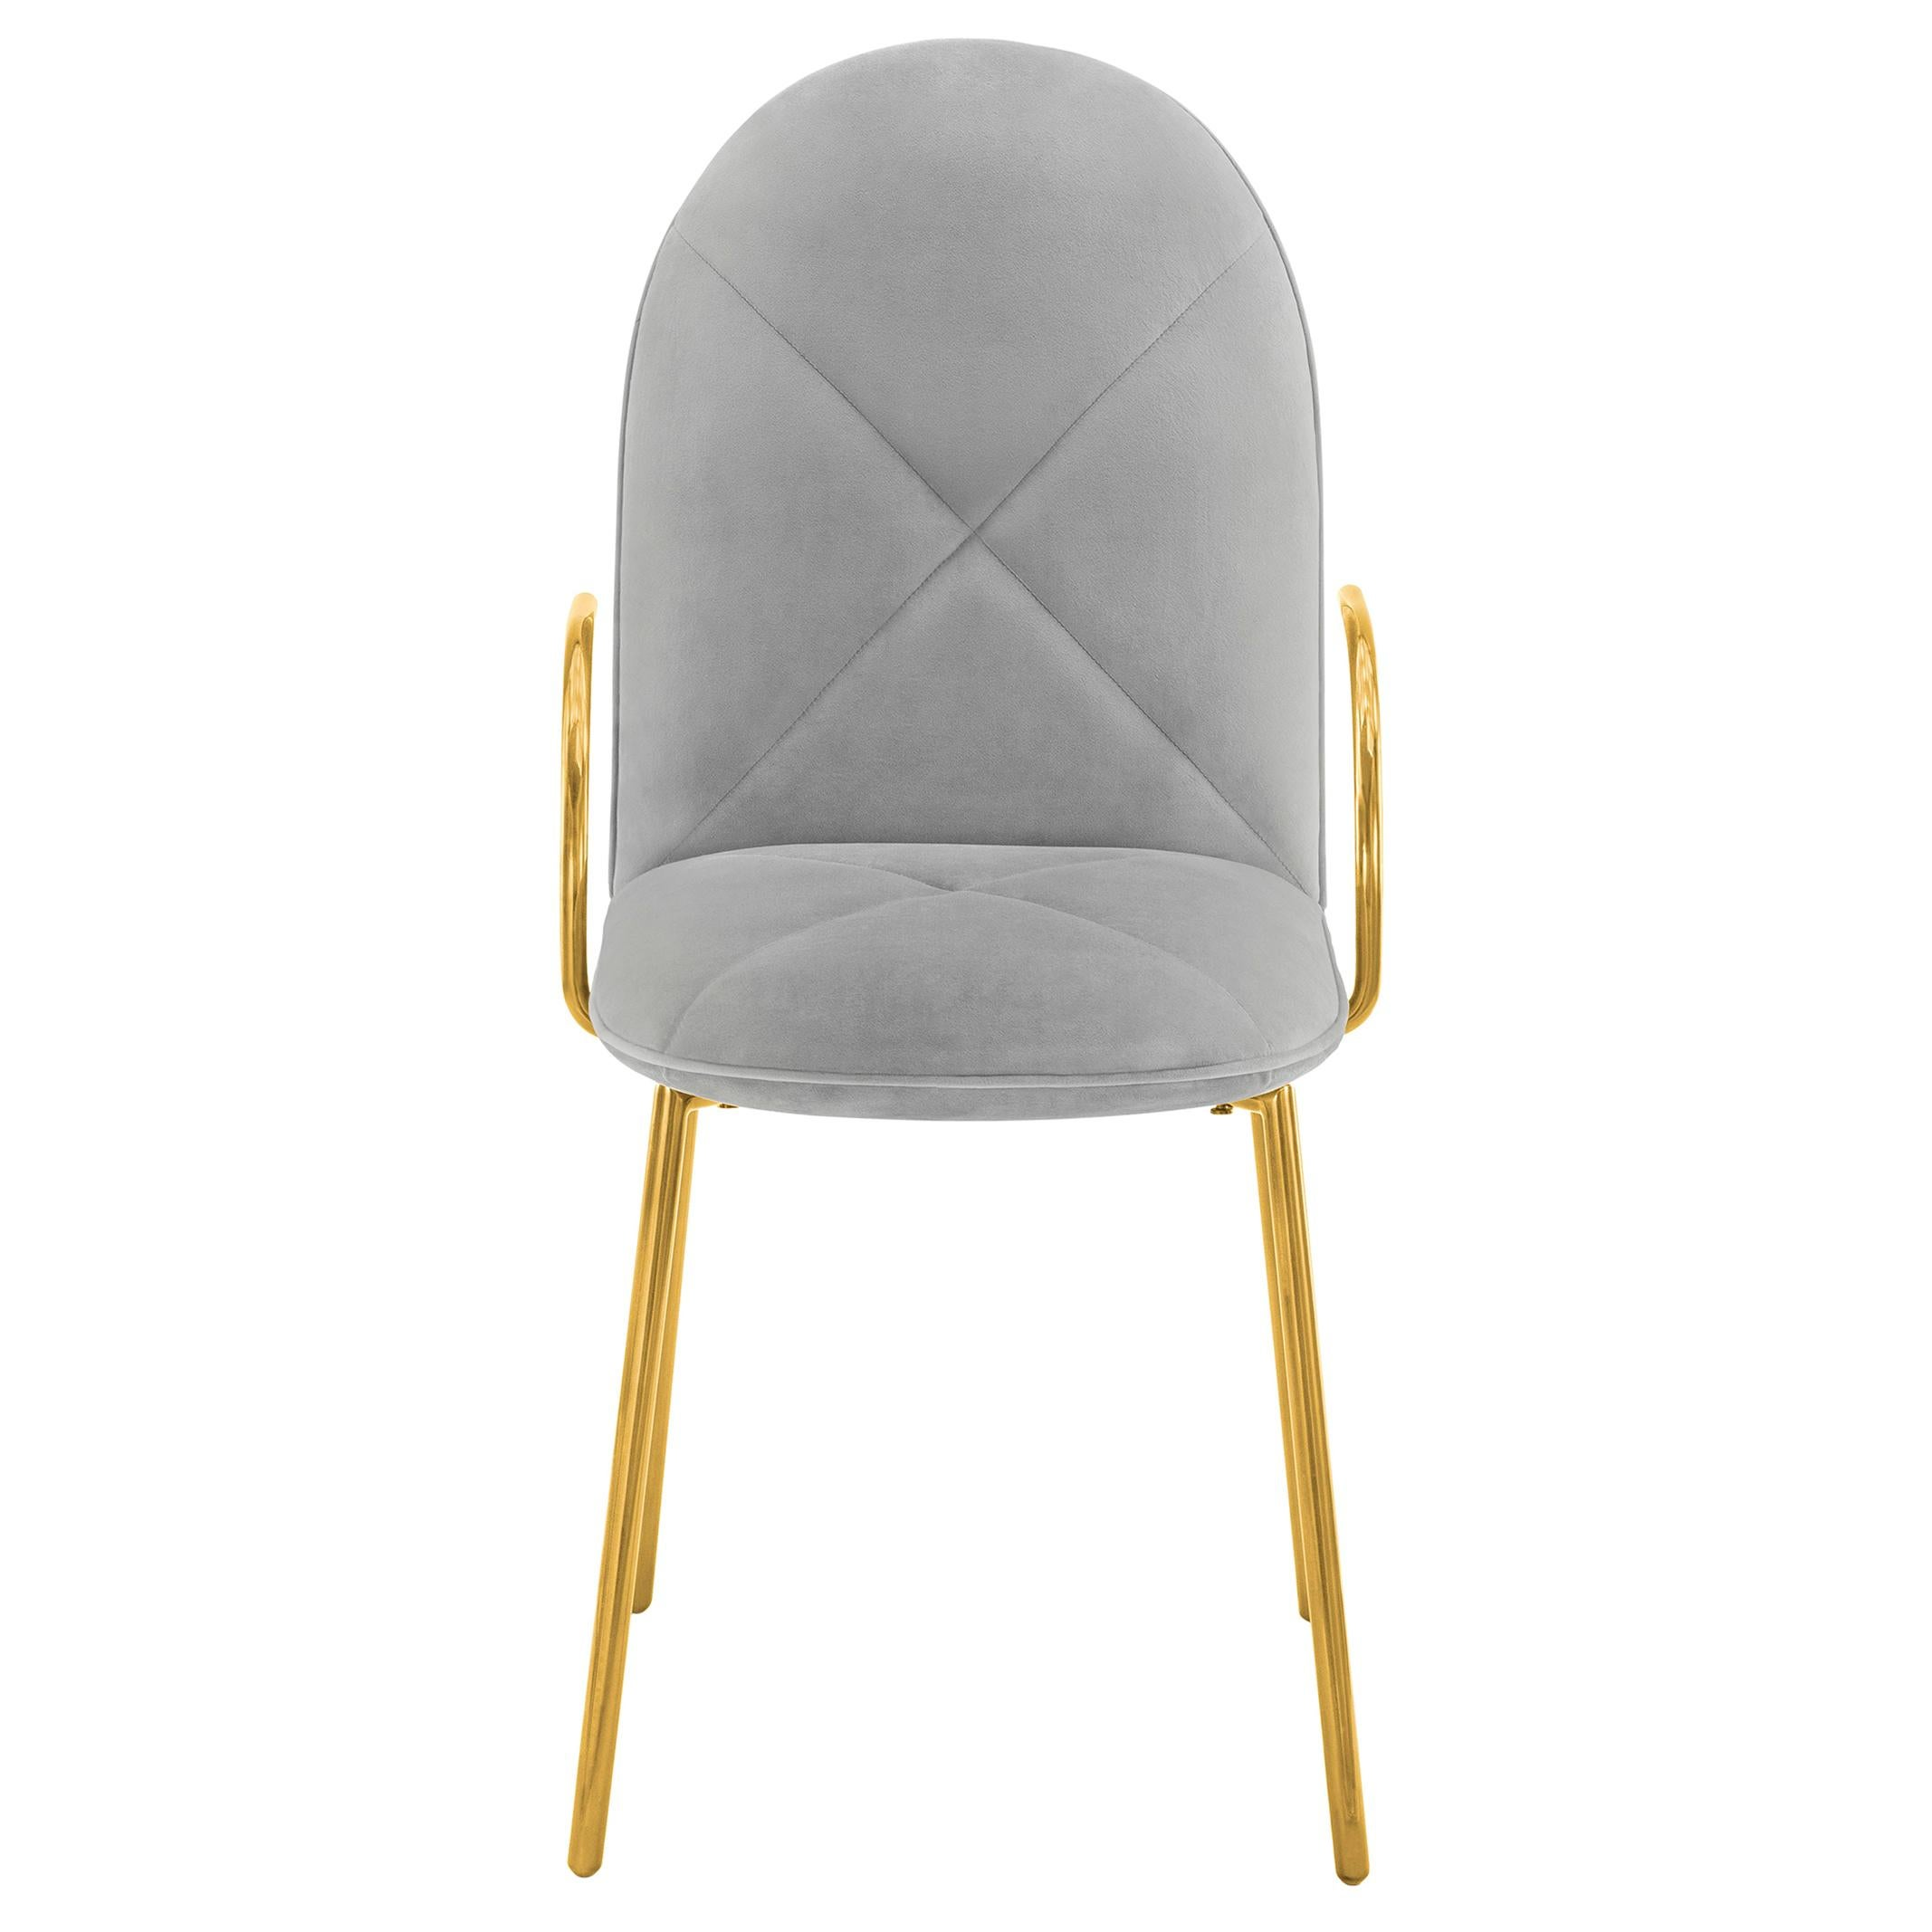 Orion Dining Chair with Plush Gray Velvet and Gold Arms by Nika Zupanc